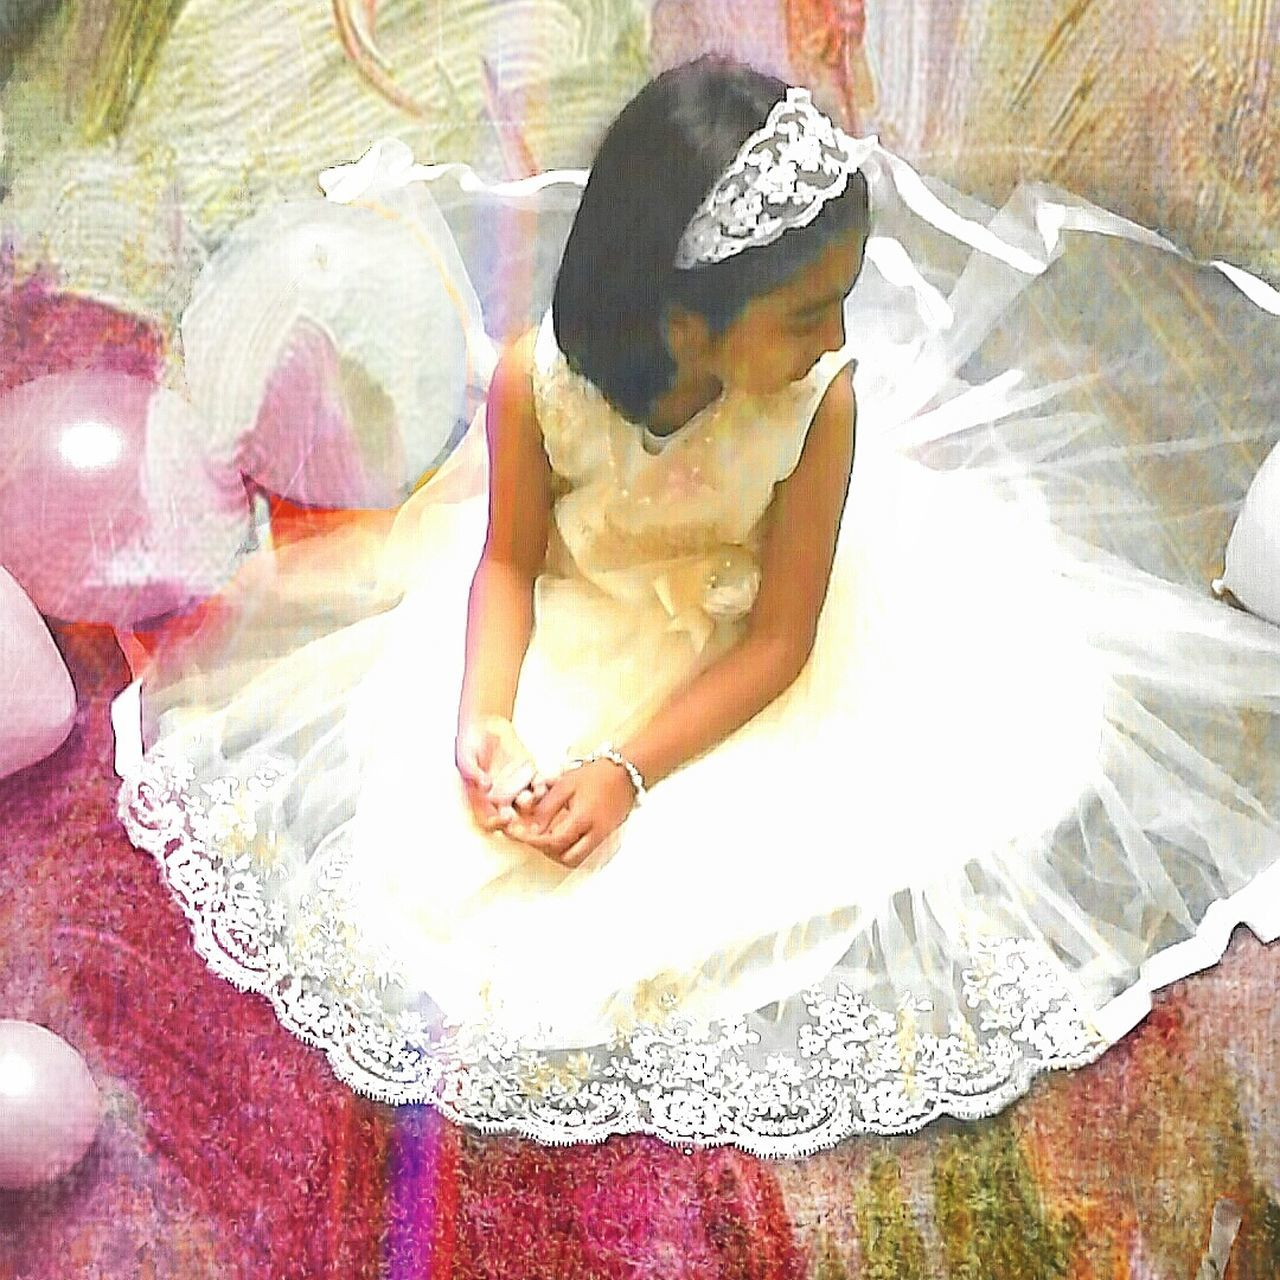 Princess ♥ Dreaming Eid Mubarak Girl Power Filters Are Fun Pixlr